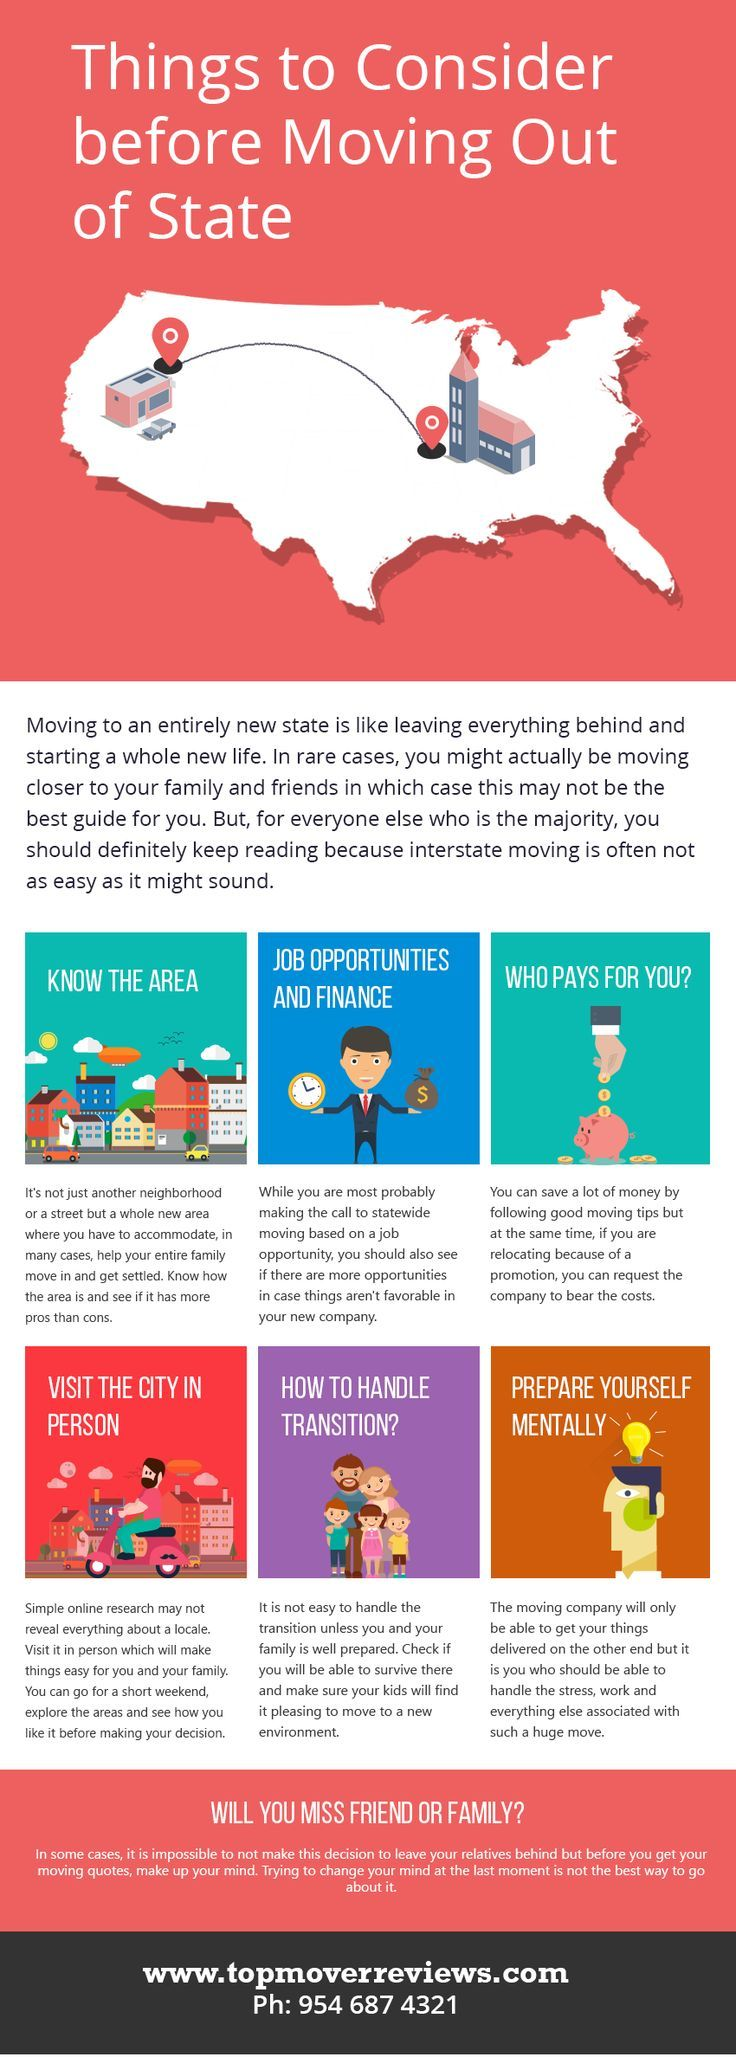 Things To Consider Before Moving Out Of State Read Moving Tips In Top Mover Reviews To Take A Lot Of Things Into Considera Moving Tips Moving Out Moving Help